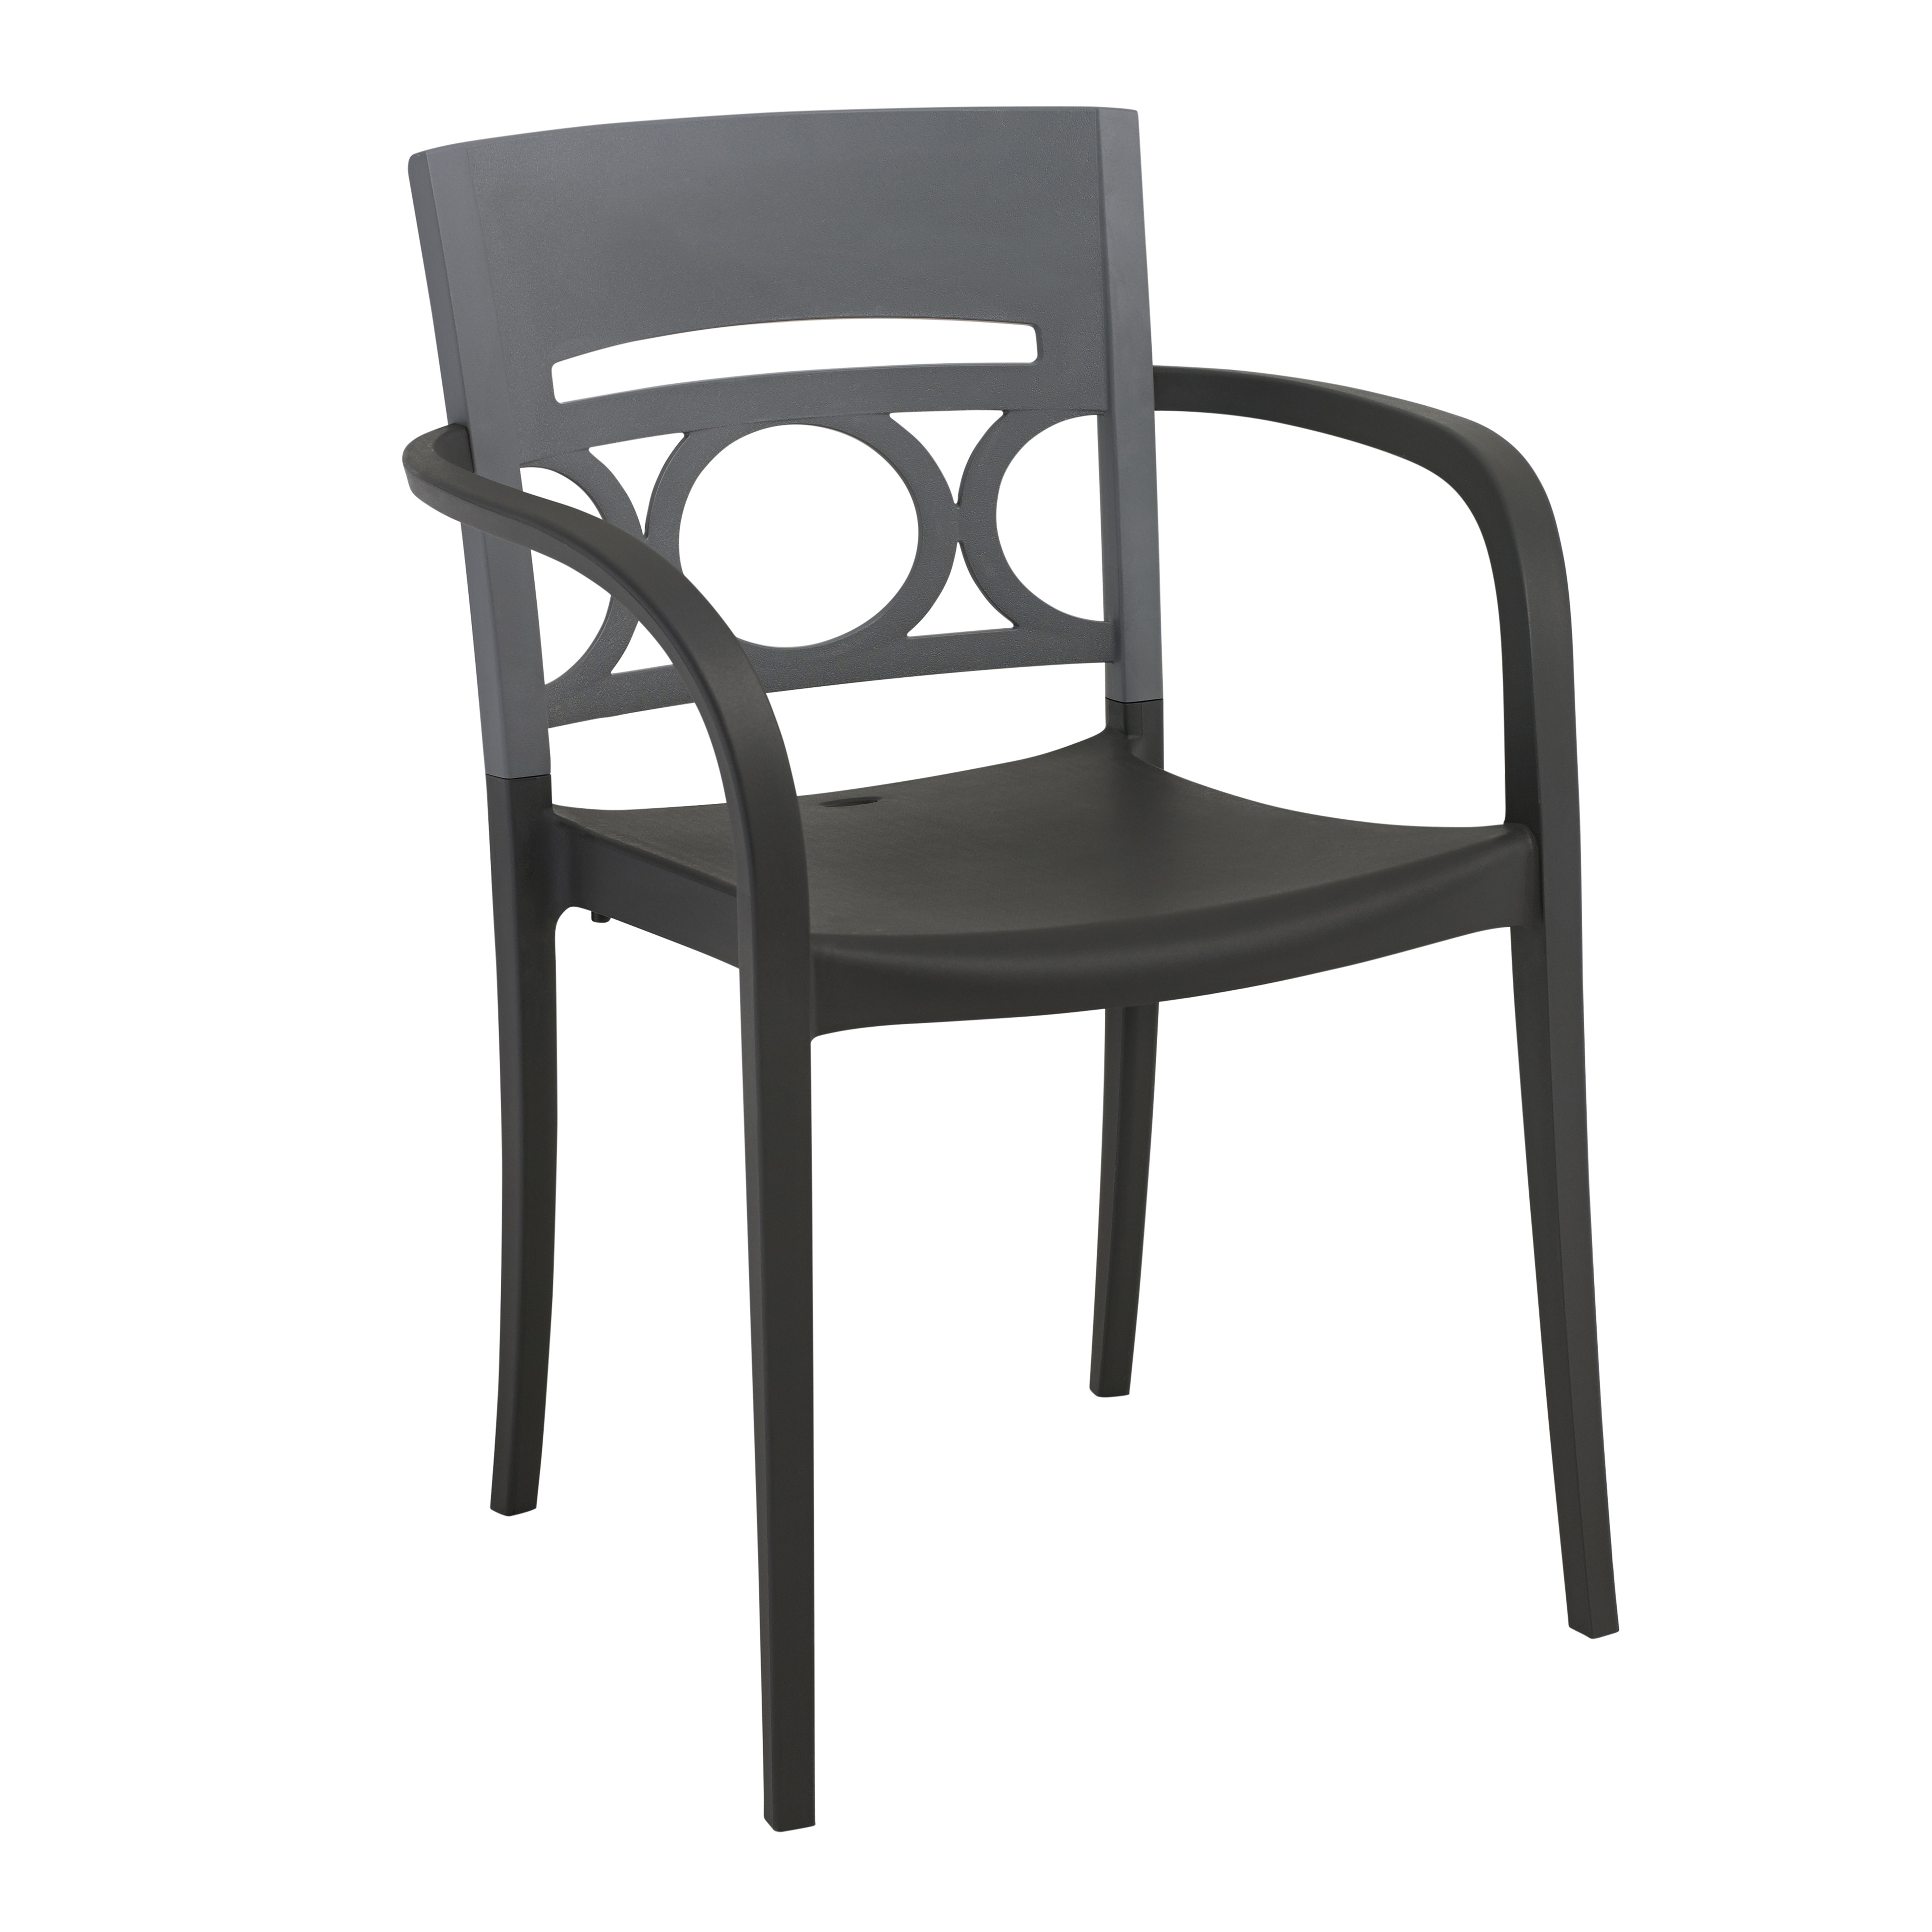 Grosfillex US556579 chair, armchair, stacking, outdoor